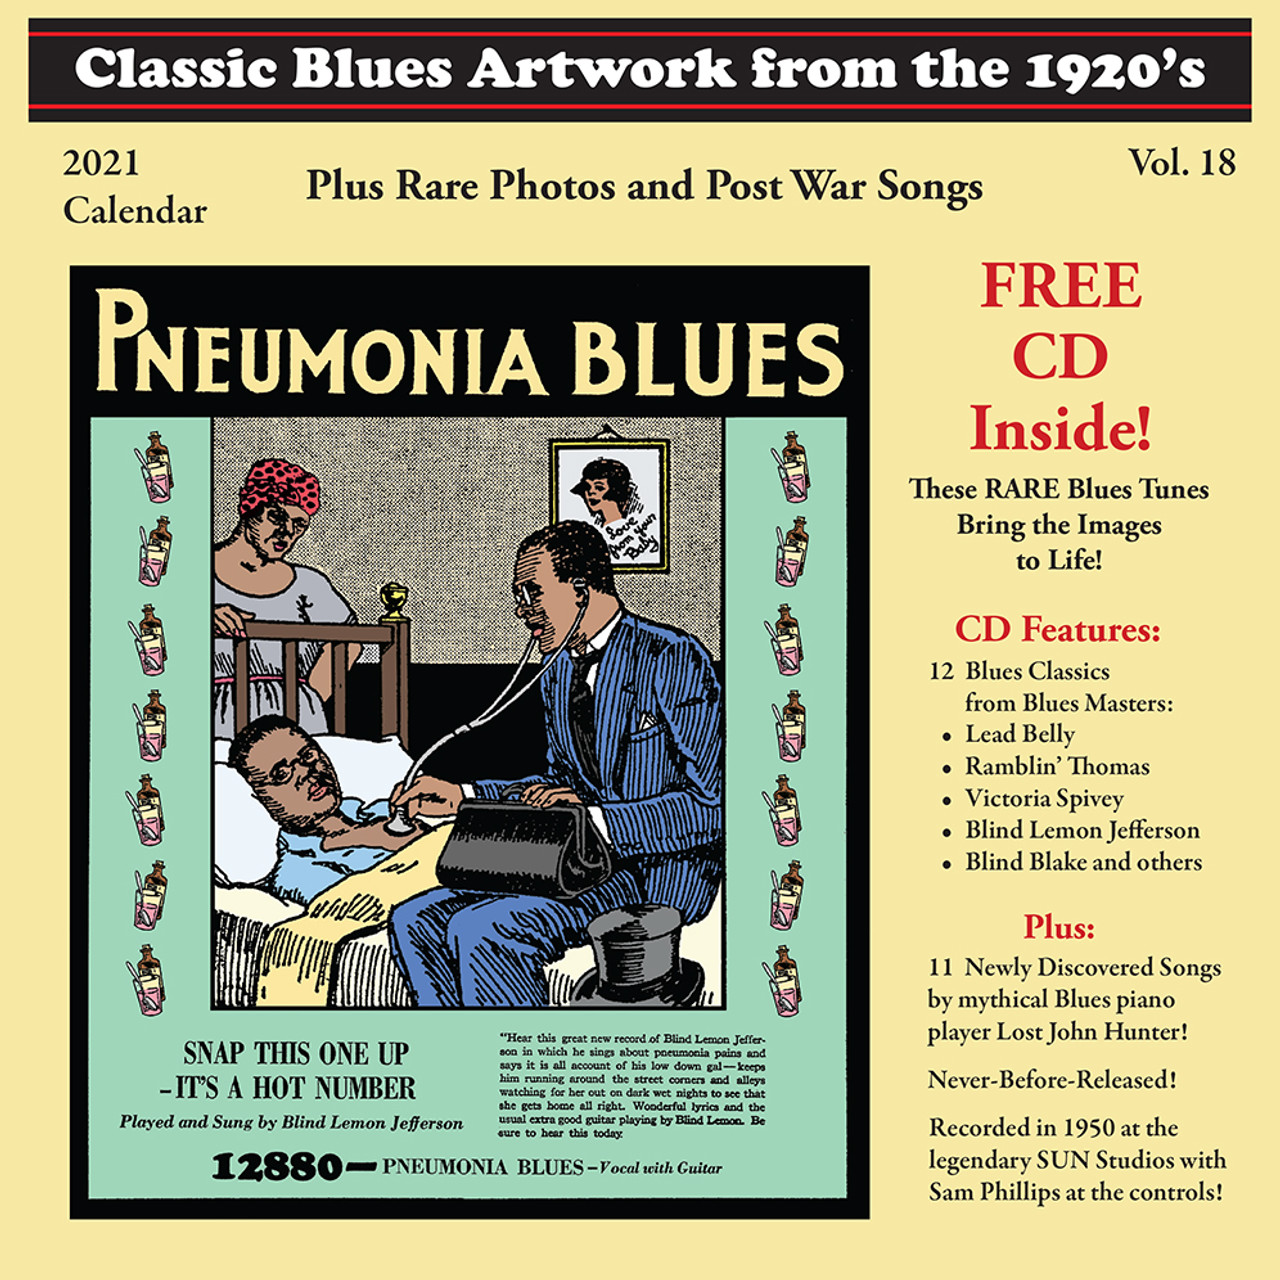 4 Issues Plus Classic Blues Artwork 1920's Calendar and 23 Song CD